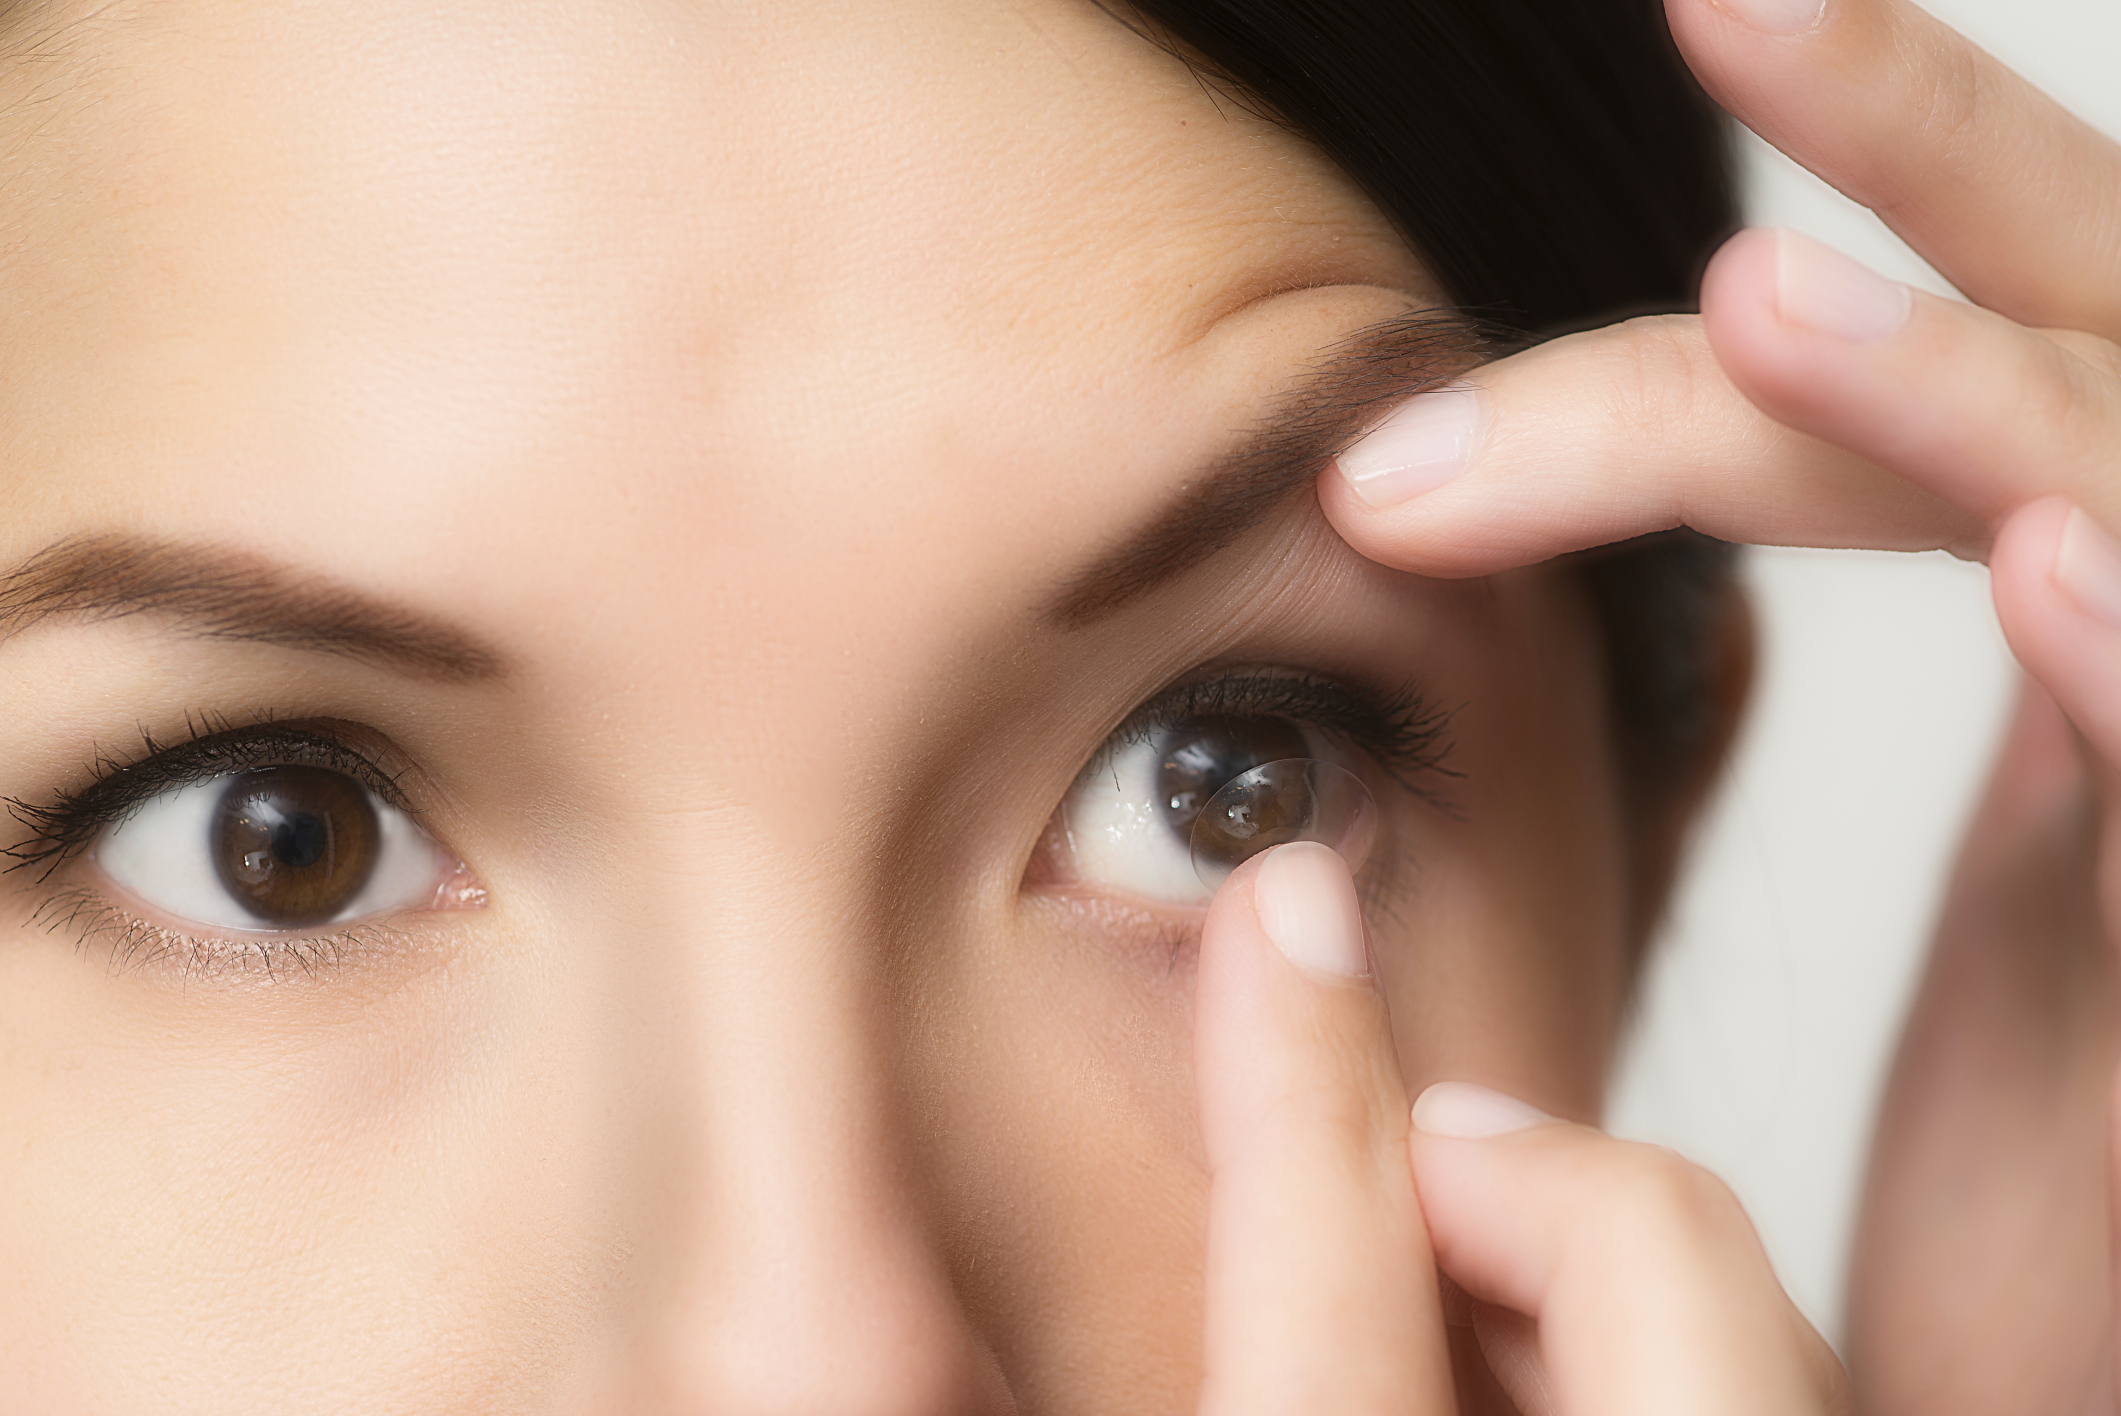 4.-Use-Of-Contact-Lens